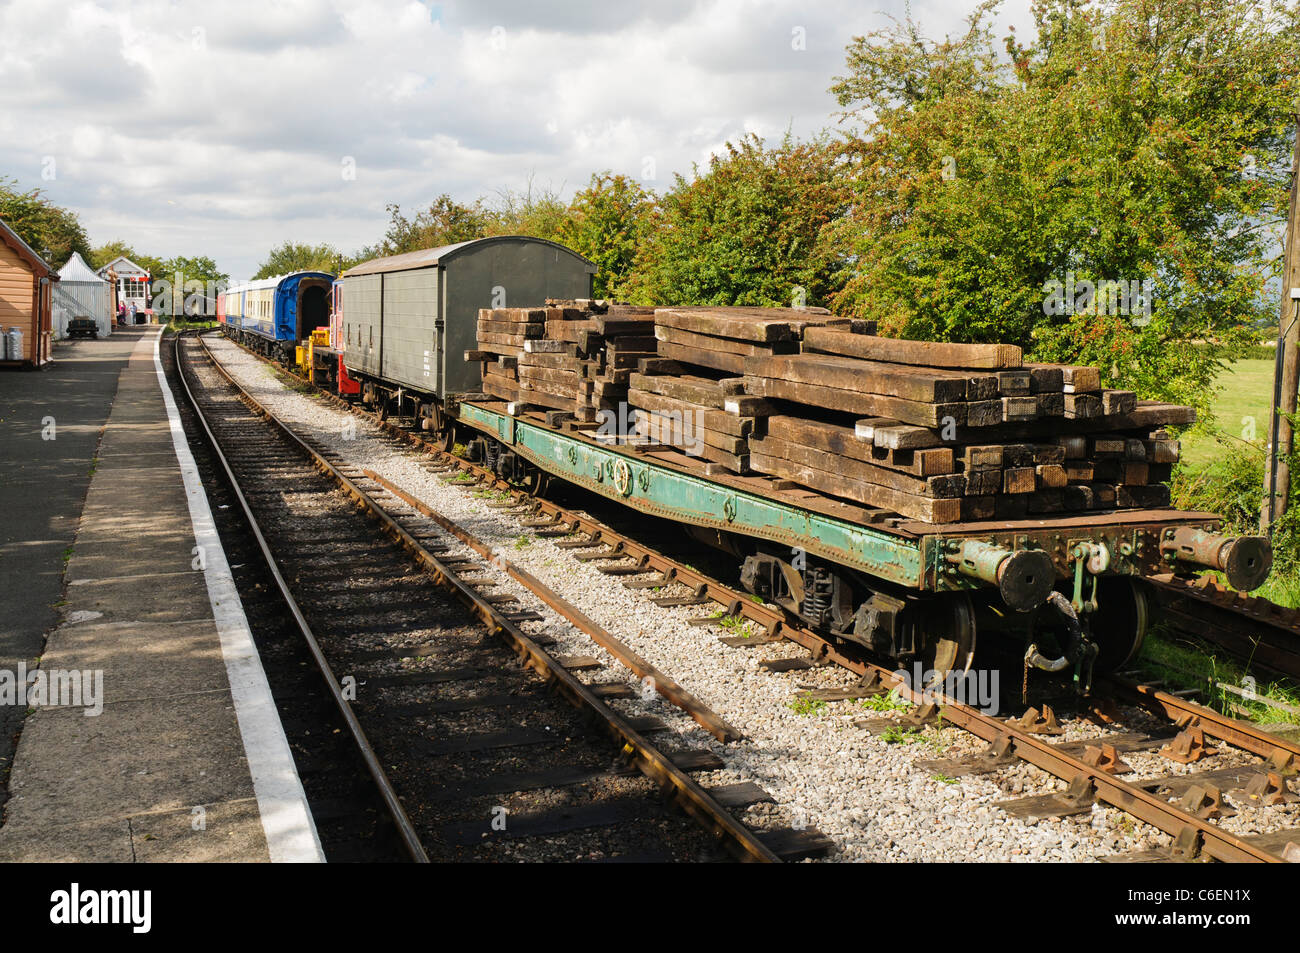 Old fashioned freight carriages including one carrying sleepers at the platform of a train station - Stock Image